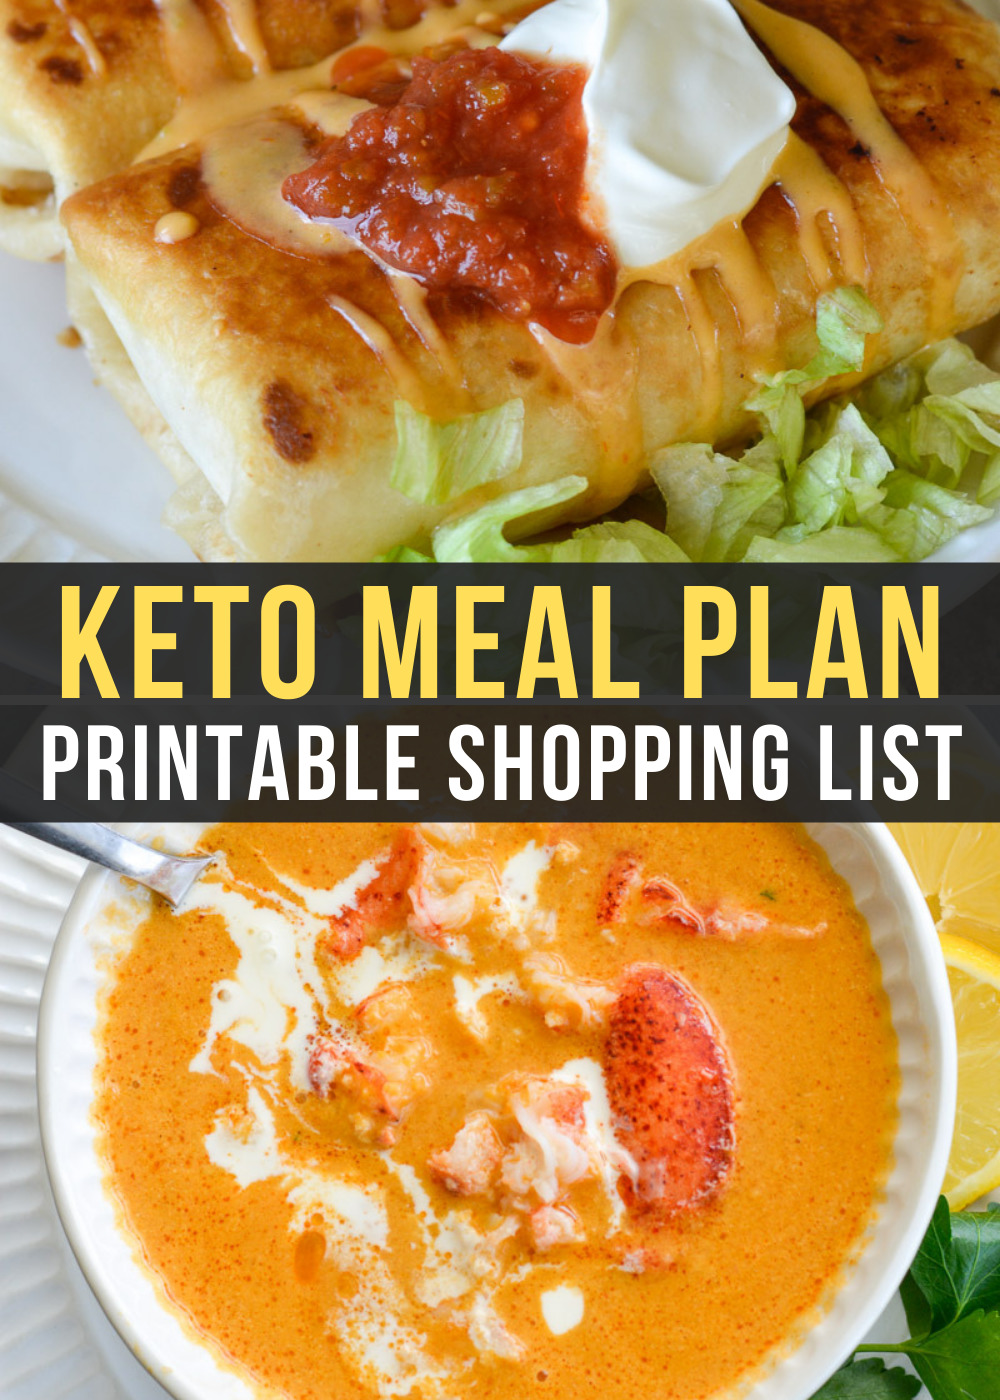 Week 20 of Easy Keto Meal Plan includes delicious keto meals like chicken chimichangas and lobster bisque!